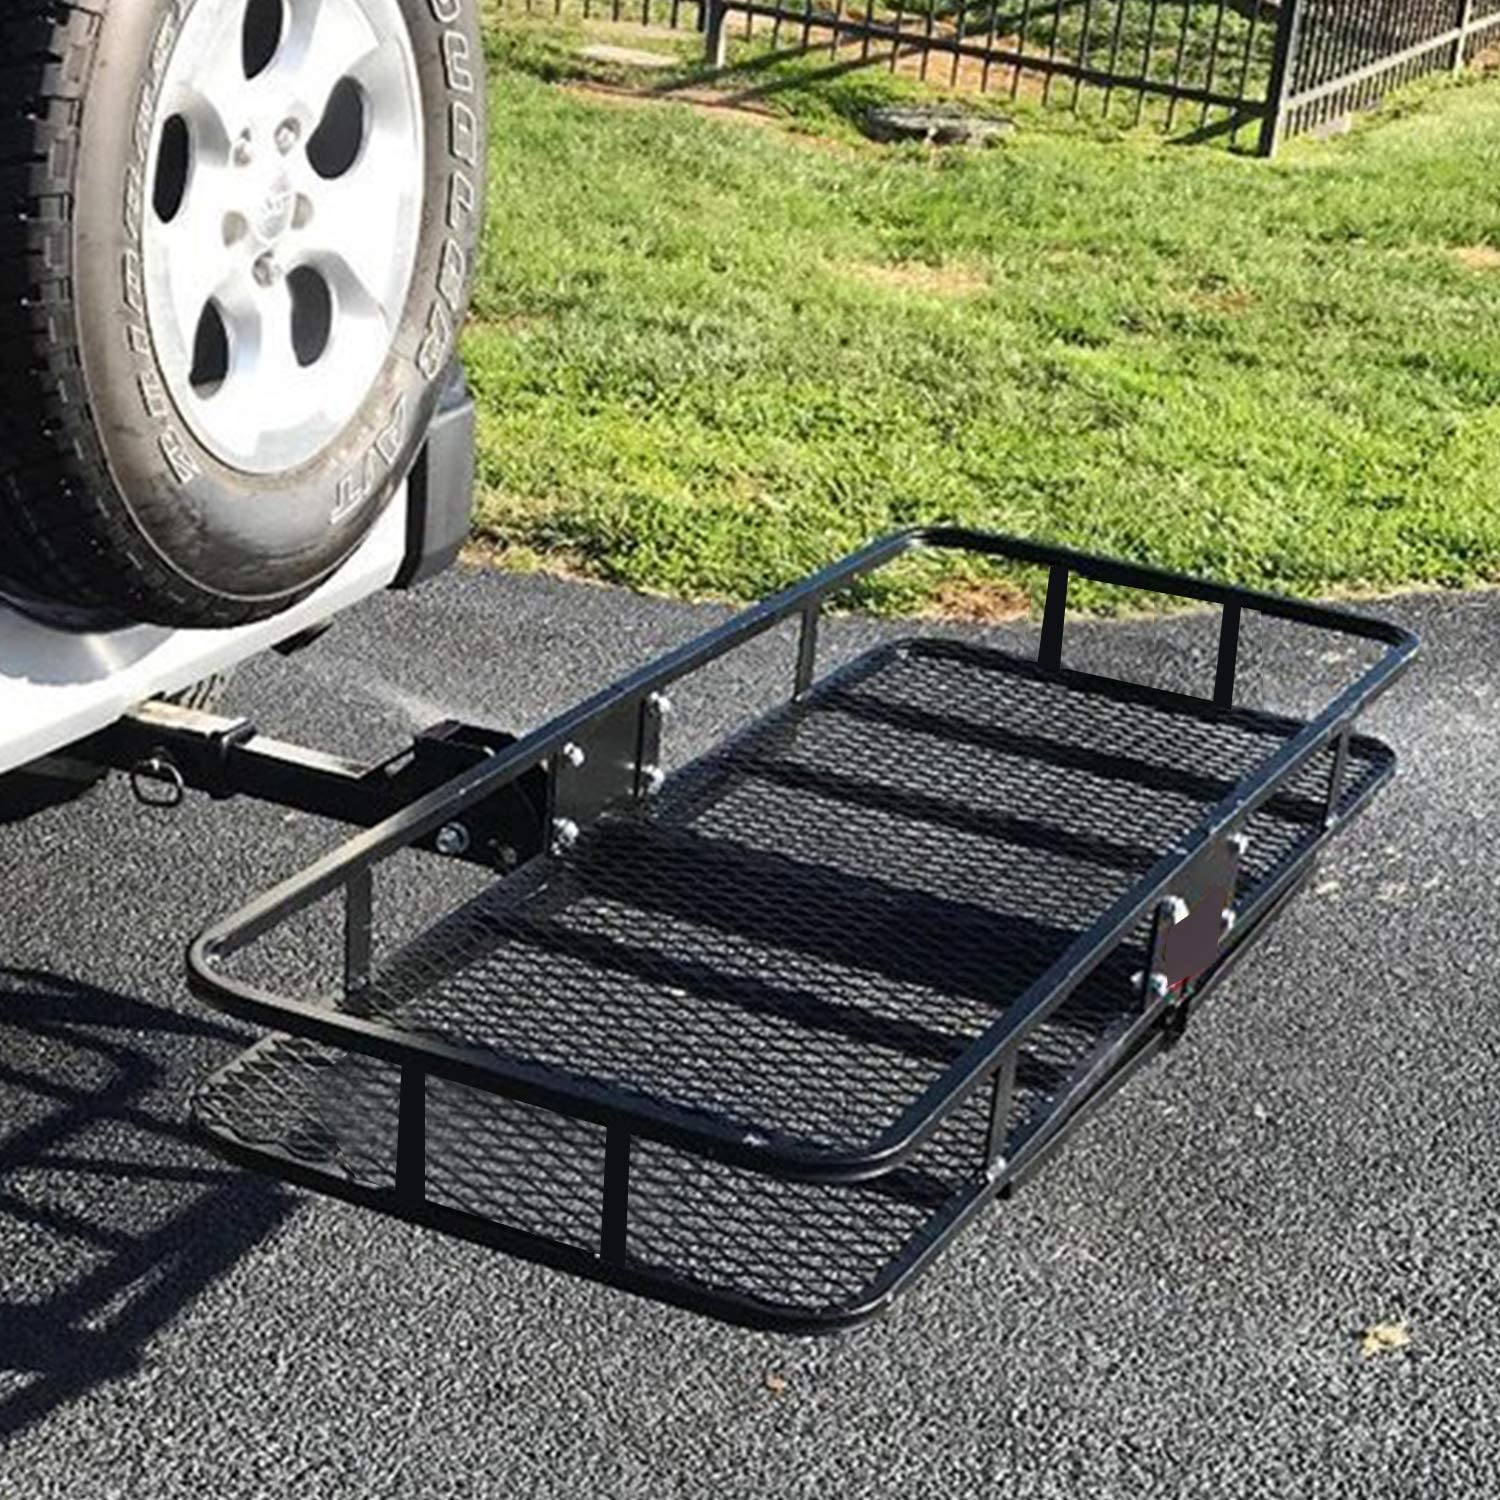 W x 9 x 60 CAR DRESS Hitch Cargo Carrier 47.5 Luggage Rack 500 lbs Capacity Fits 2 Receiver H L